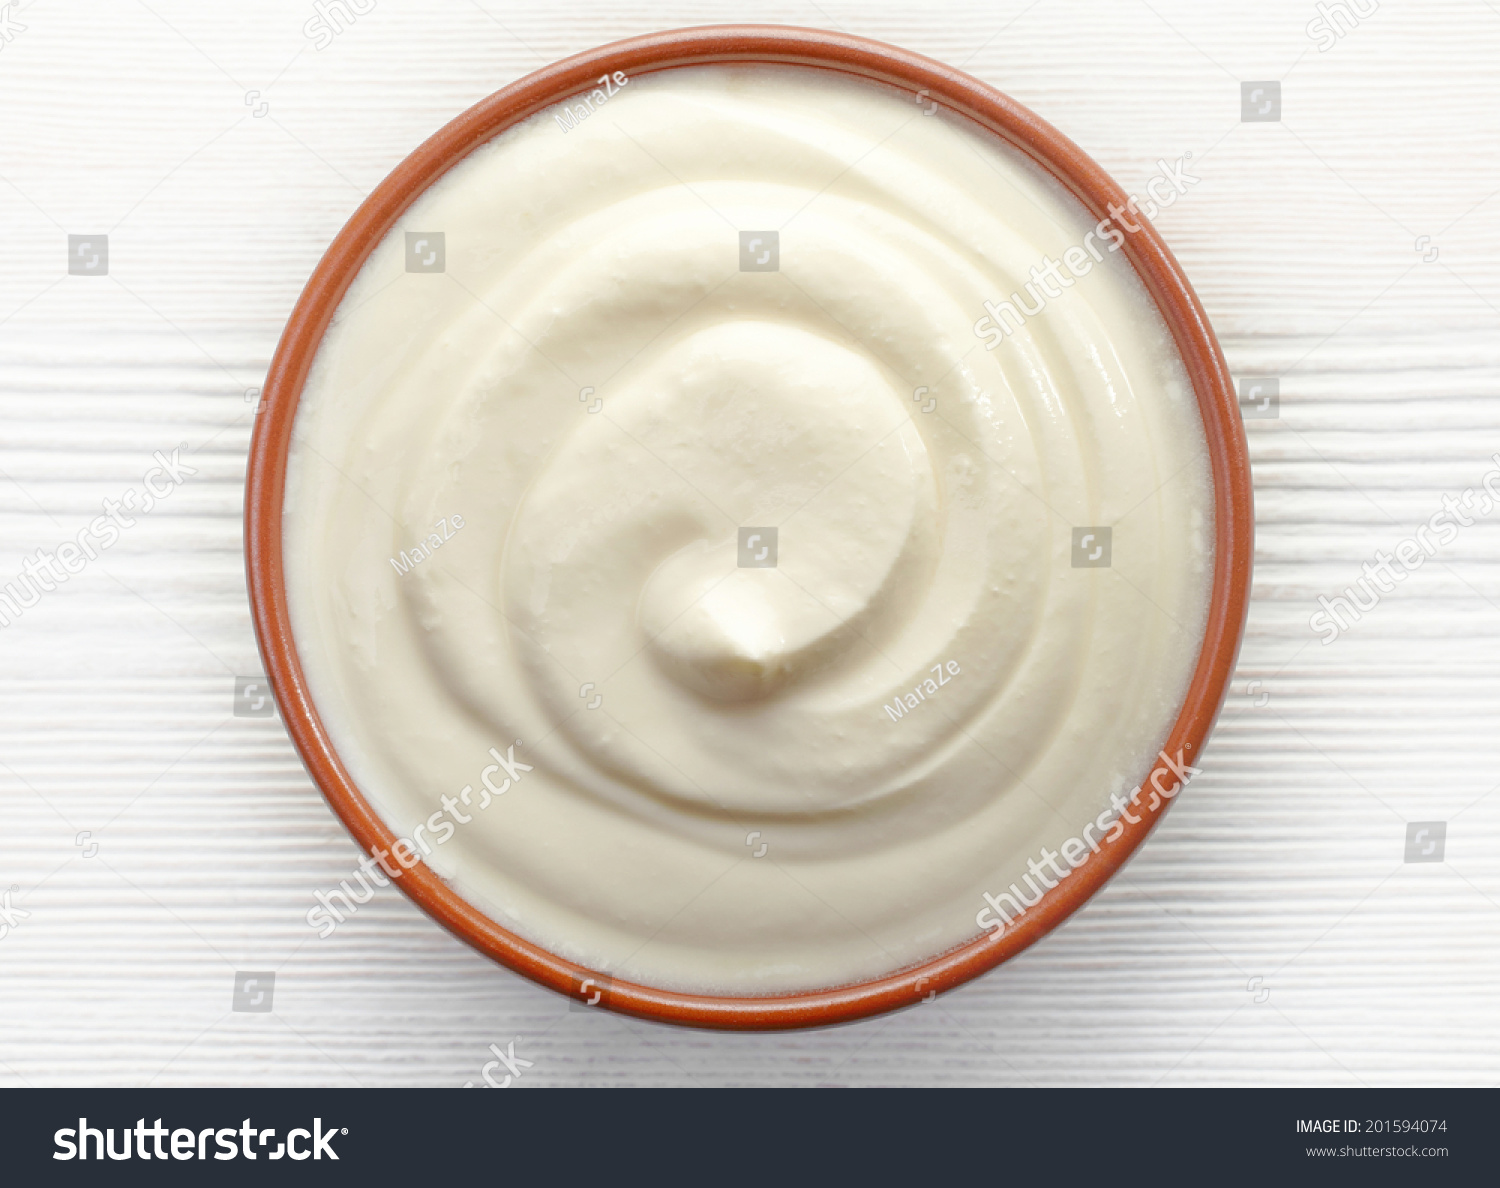 Bowl Of Cream On White Wooden Table Top View Stock Photo 201594074